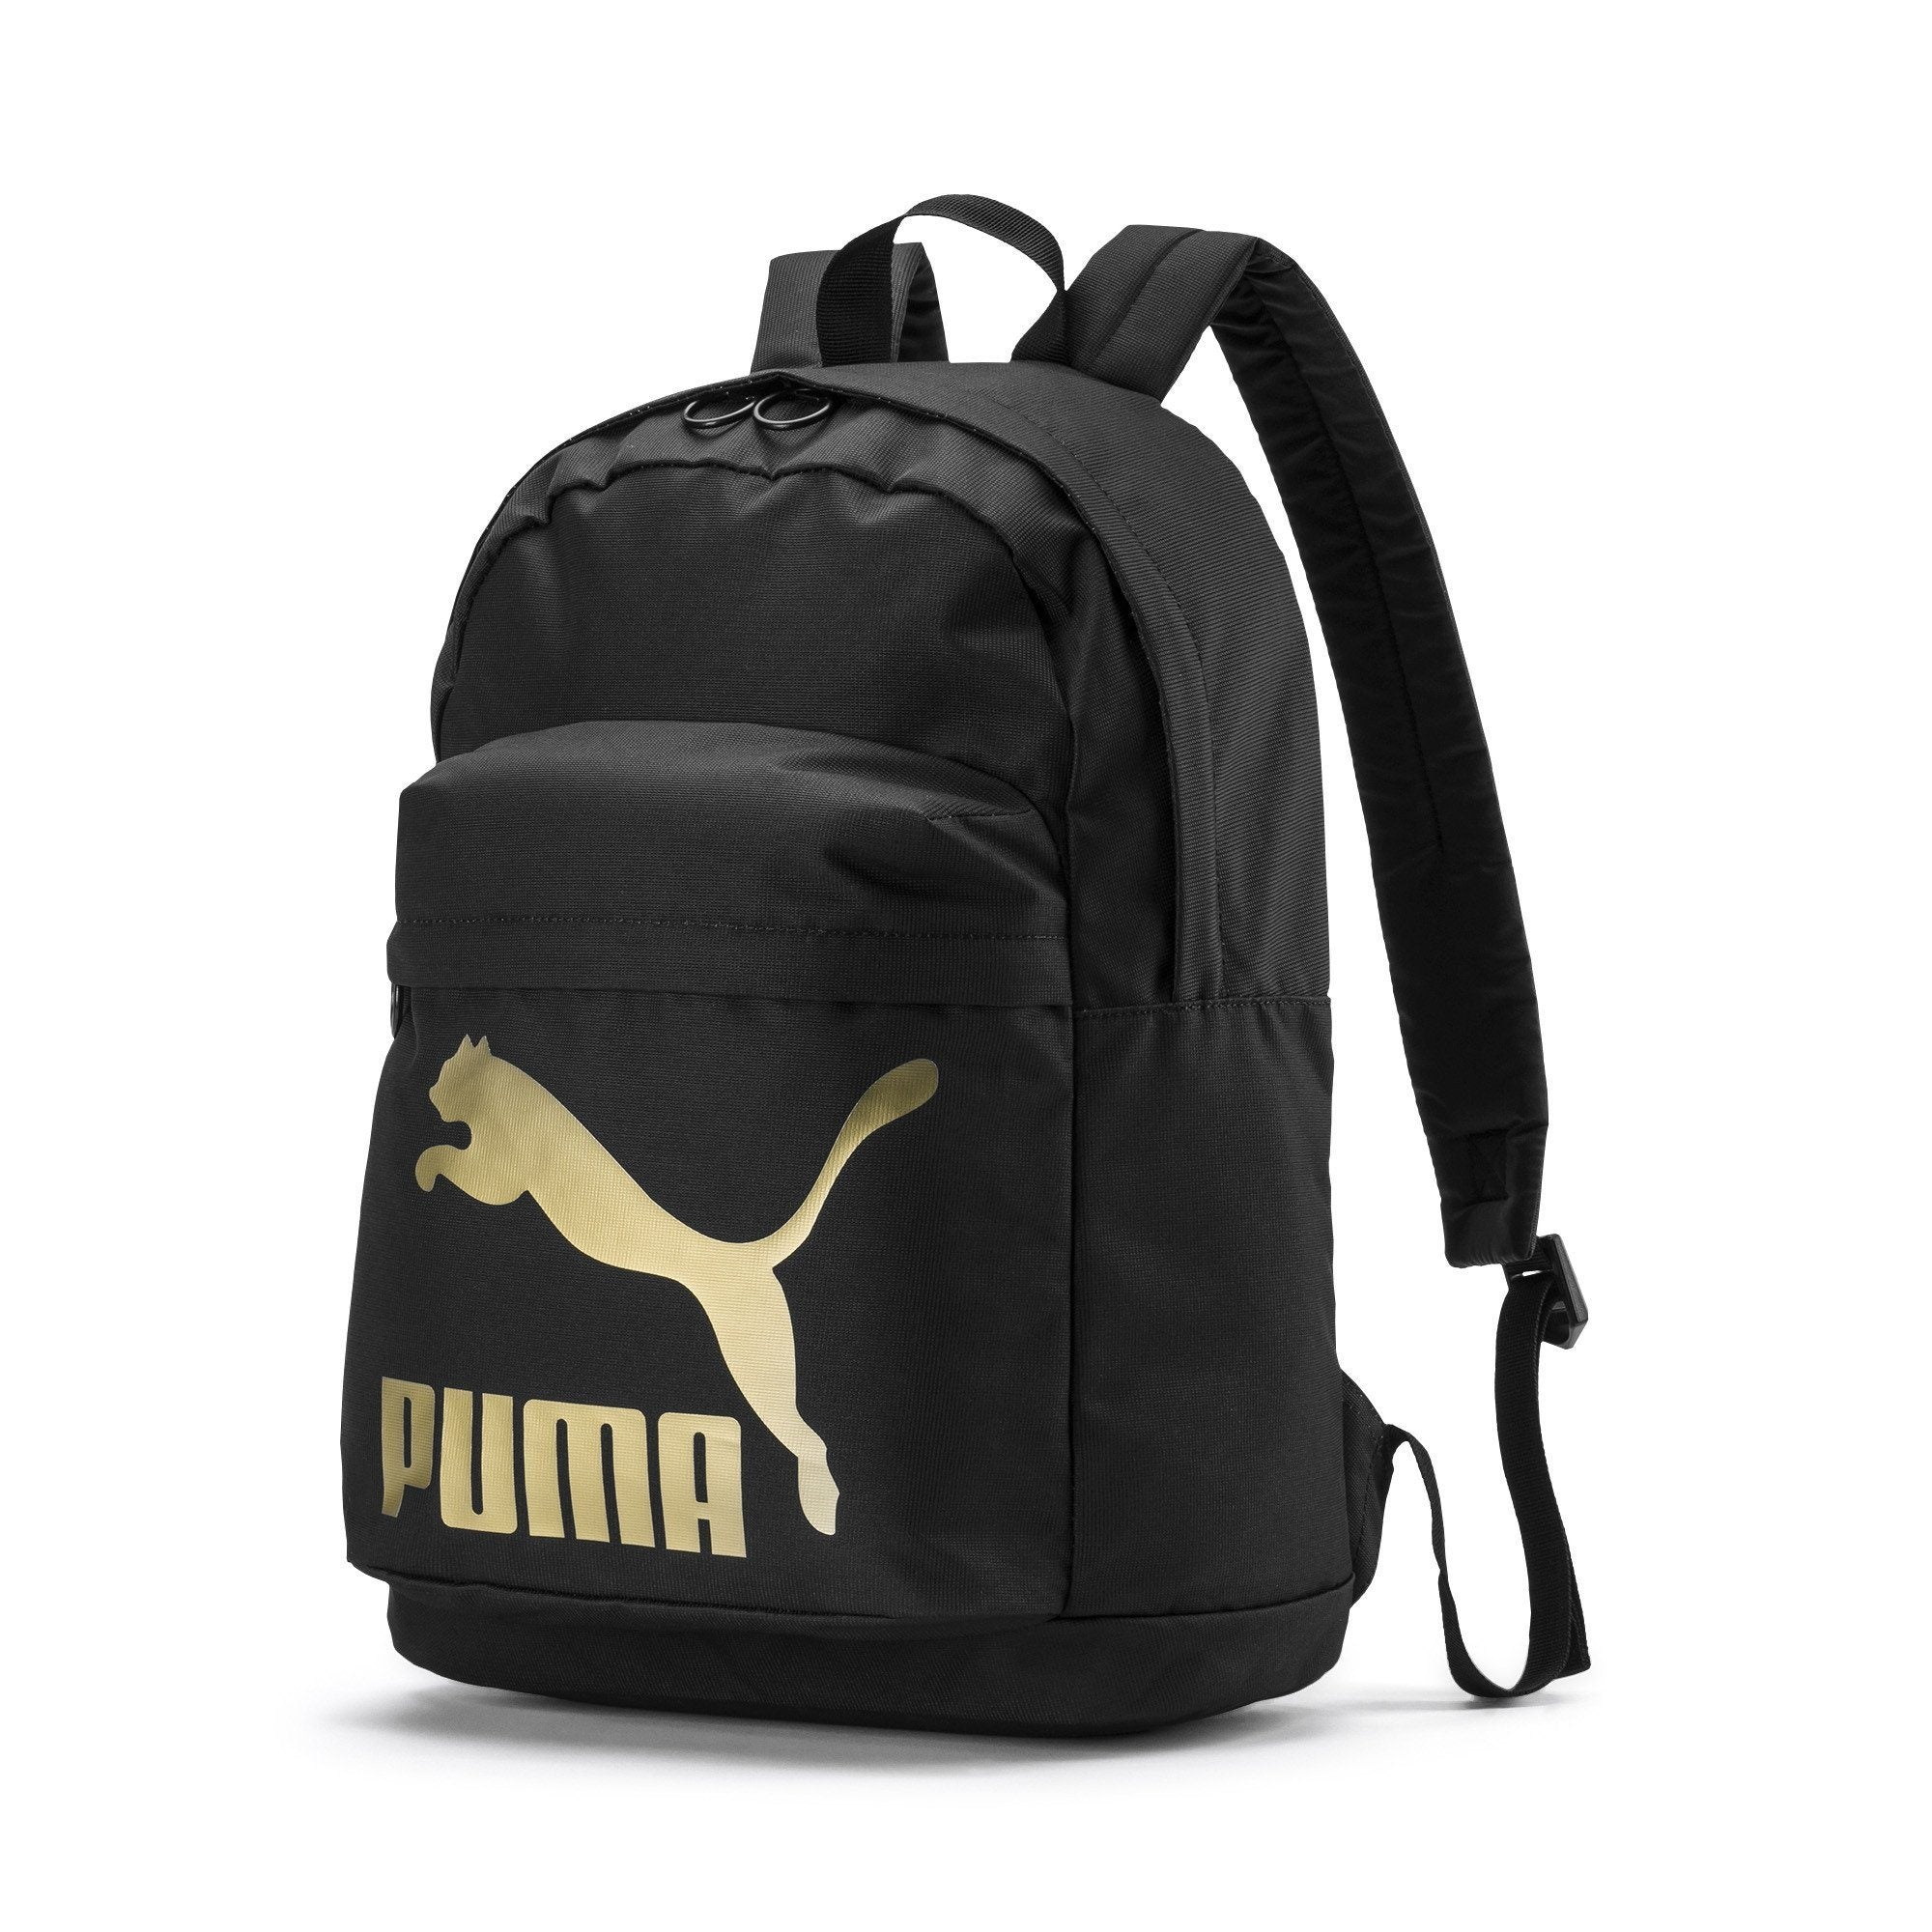 Puma Originals Backpack - Puma Black SP-Accessories-Bags Puma